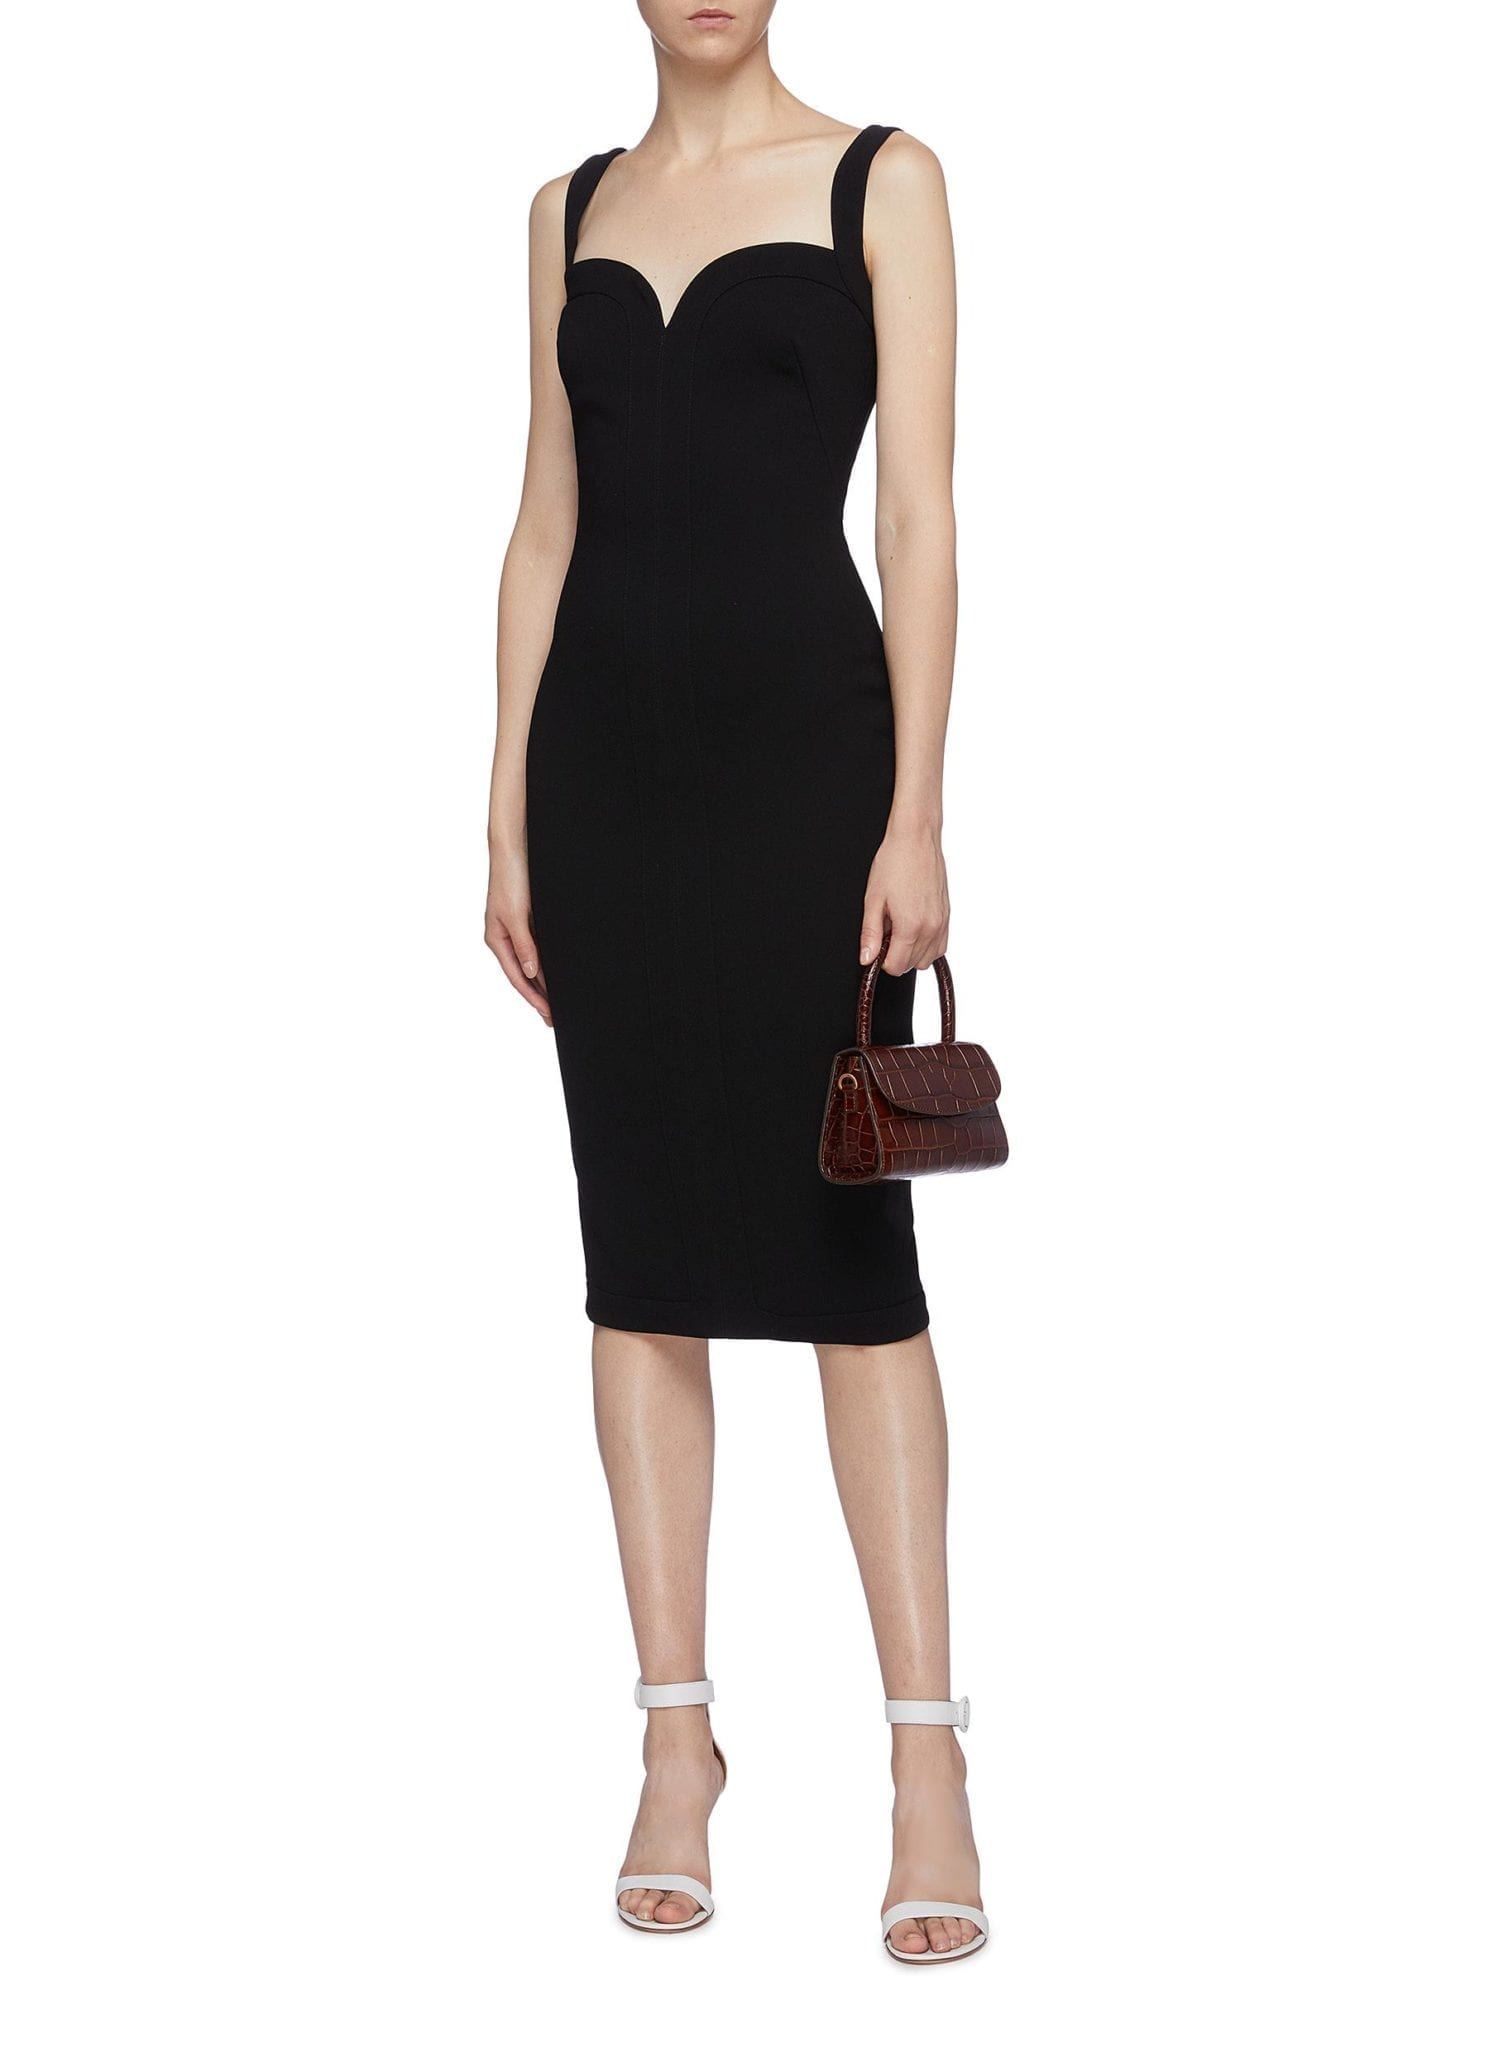 VICTORIA BECKHAM Sweetheart Neckline Sleeveless Crepe Dress